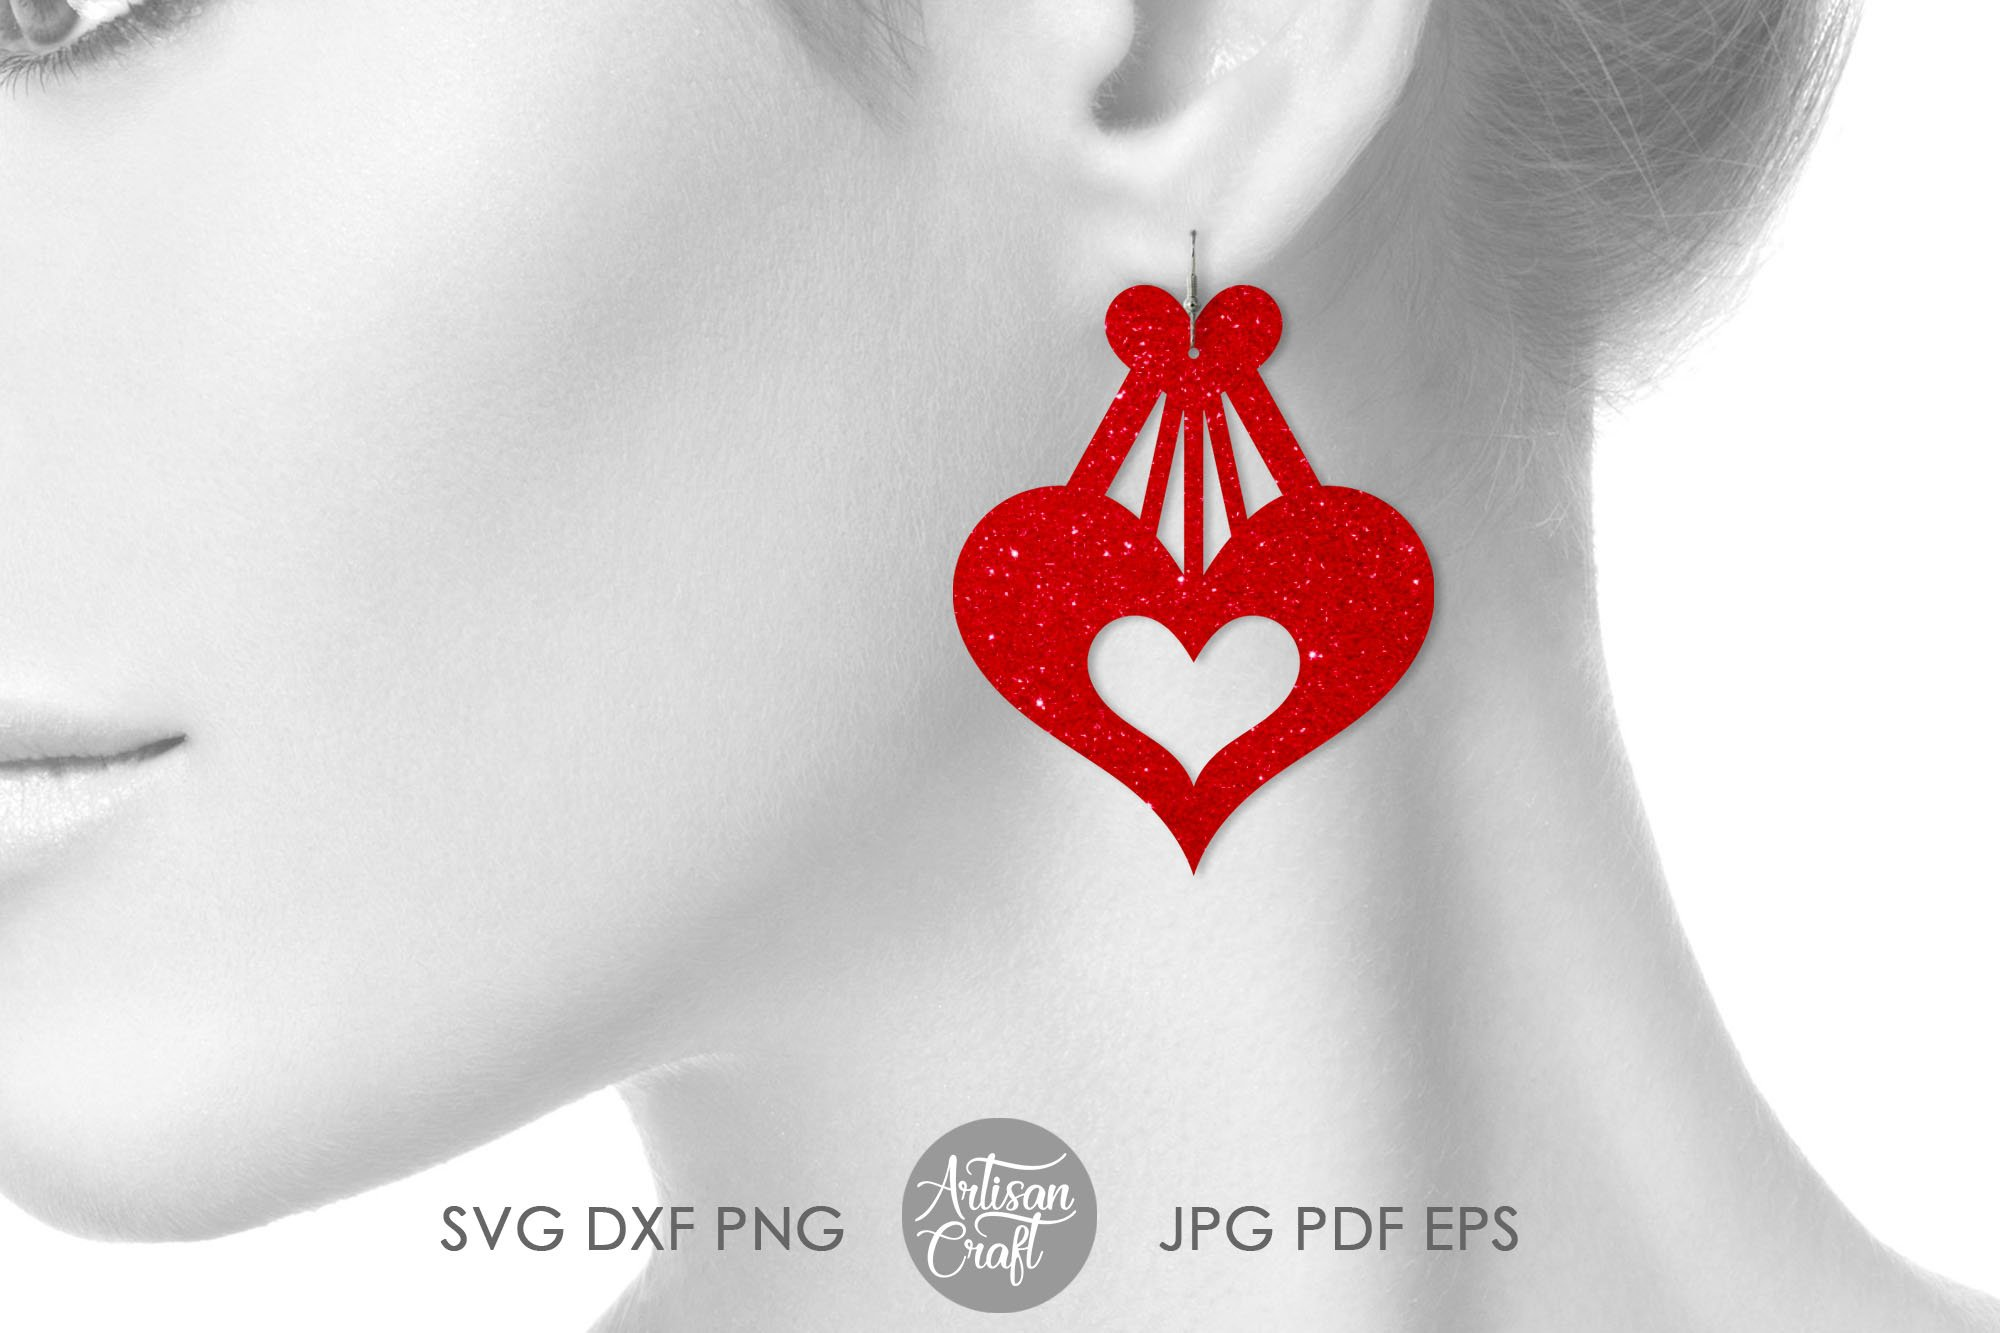 Heart earrings, SVG cutting files, faux leather earrings example image 3